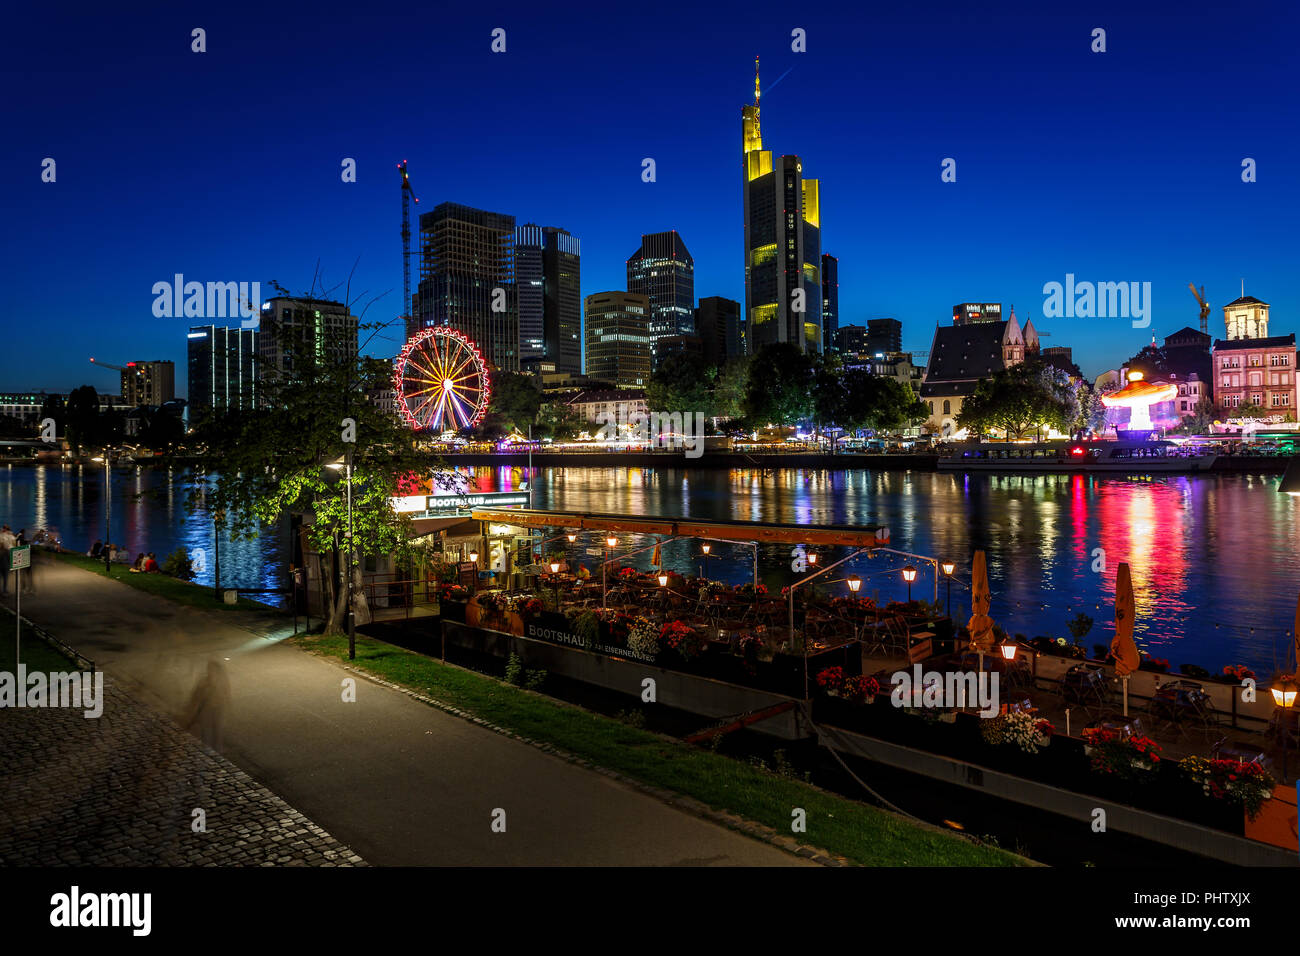 FRANKFURT AM MAIN, GERMANY - August  07, 2017: Frankfurt am Main - the business capital of Germany at night. View of illuminated skyscrapers Stock Photo